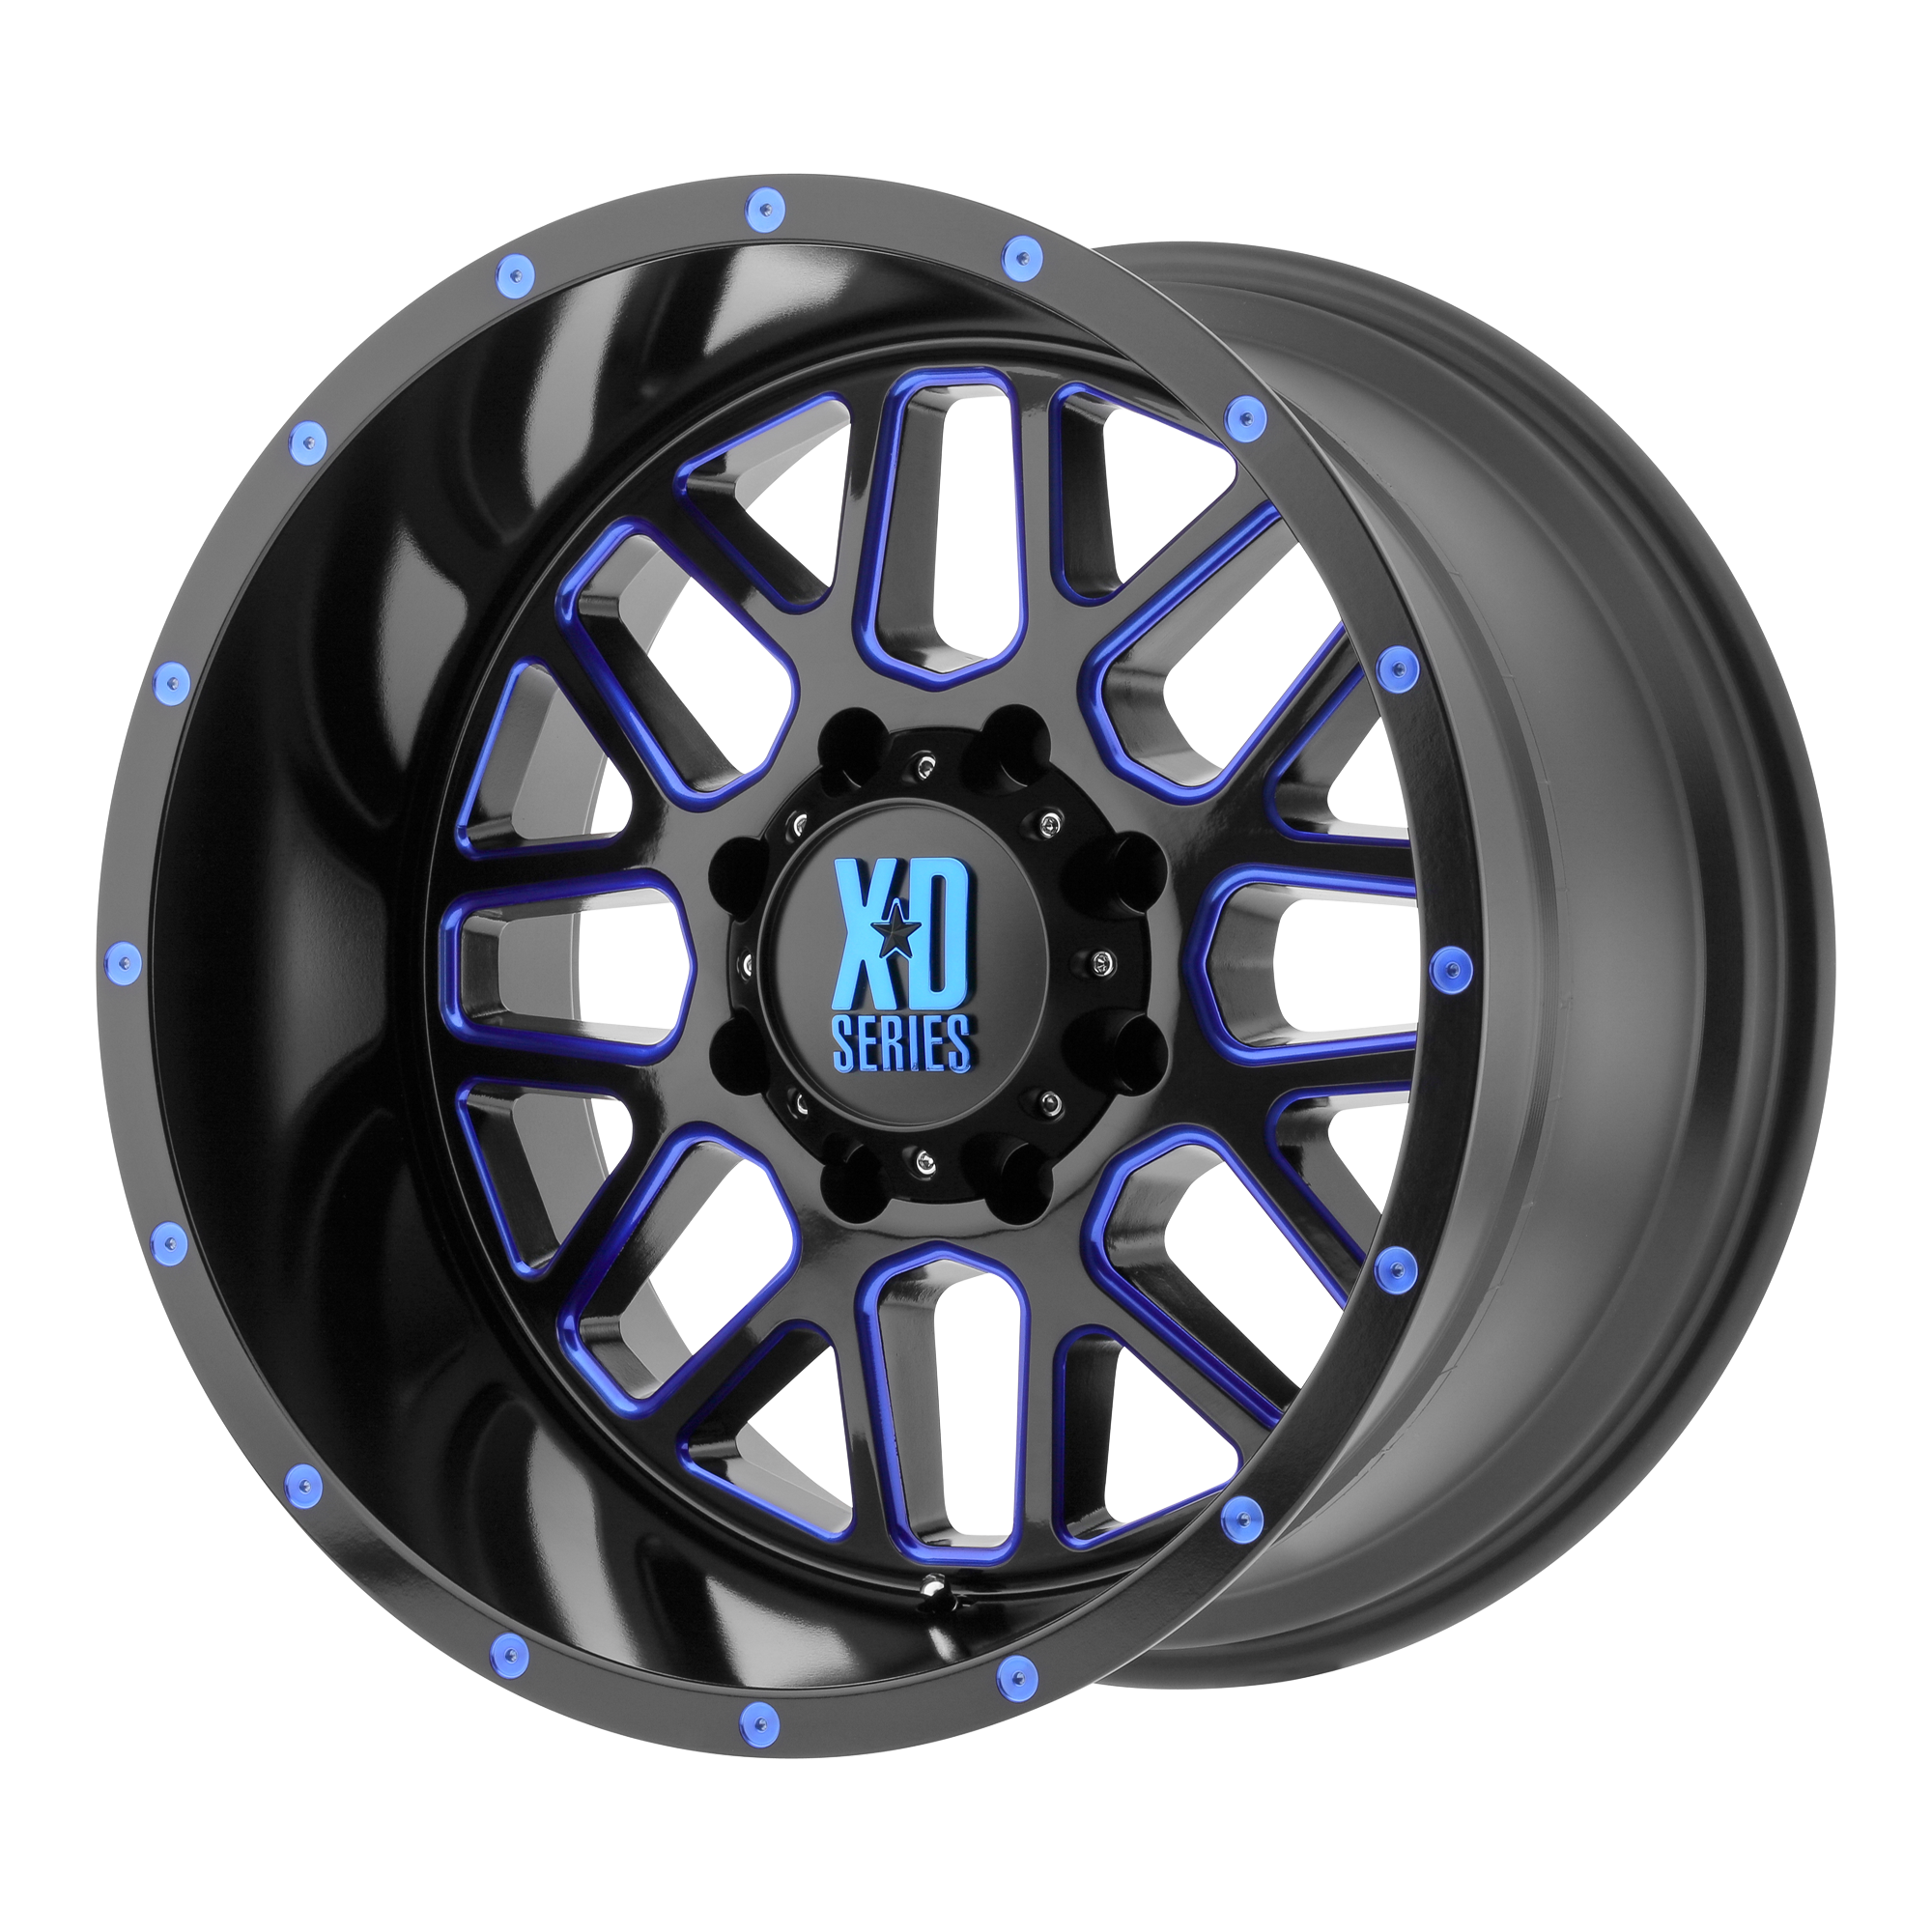 XD Series by KMC Wheels GRENADE Satin Black Milled w/ BLUE Tinted Clear Coat